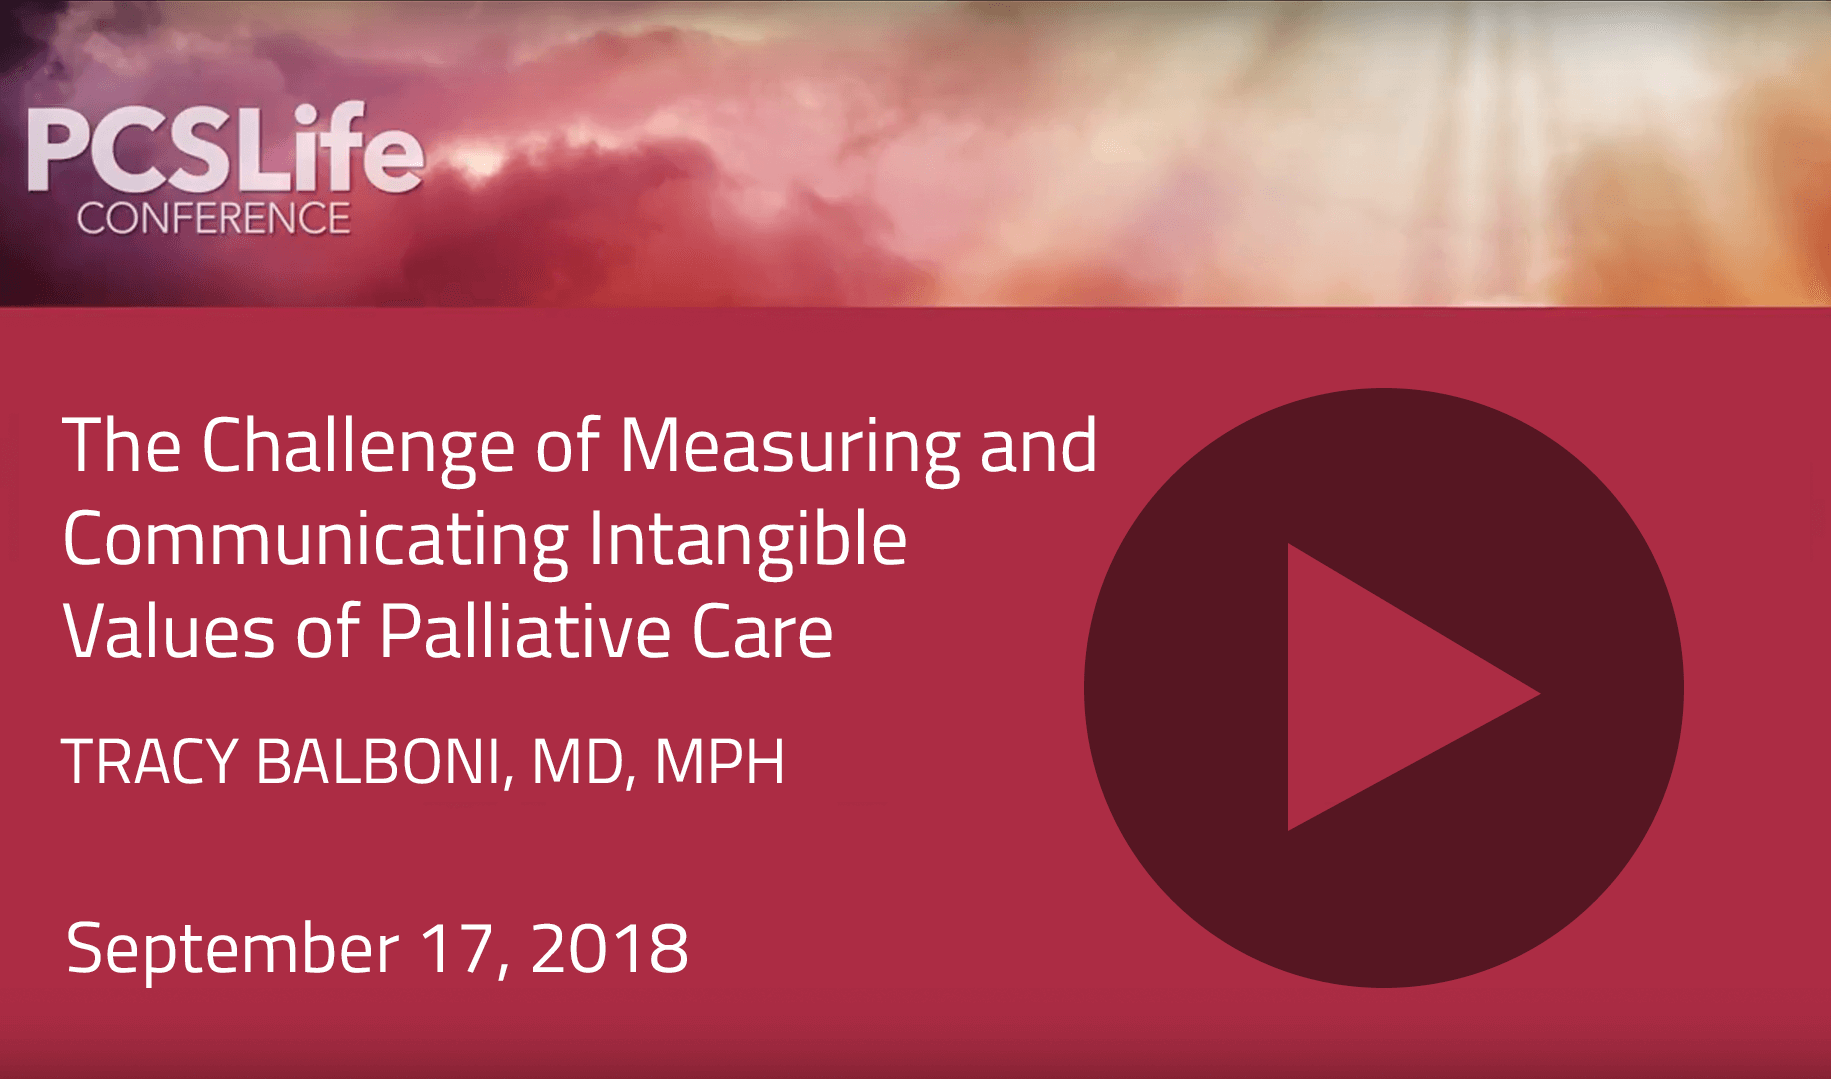 The Challenge of Measuring and Communicating Intangible Values of Palliative Care by Tracy Balboni